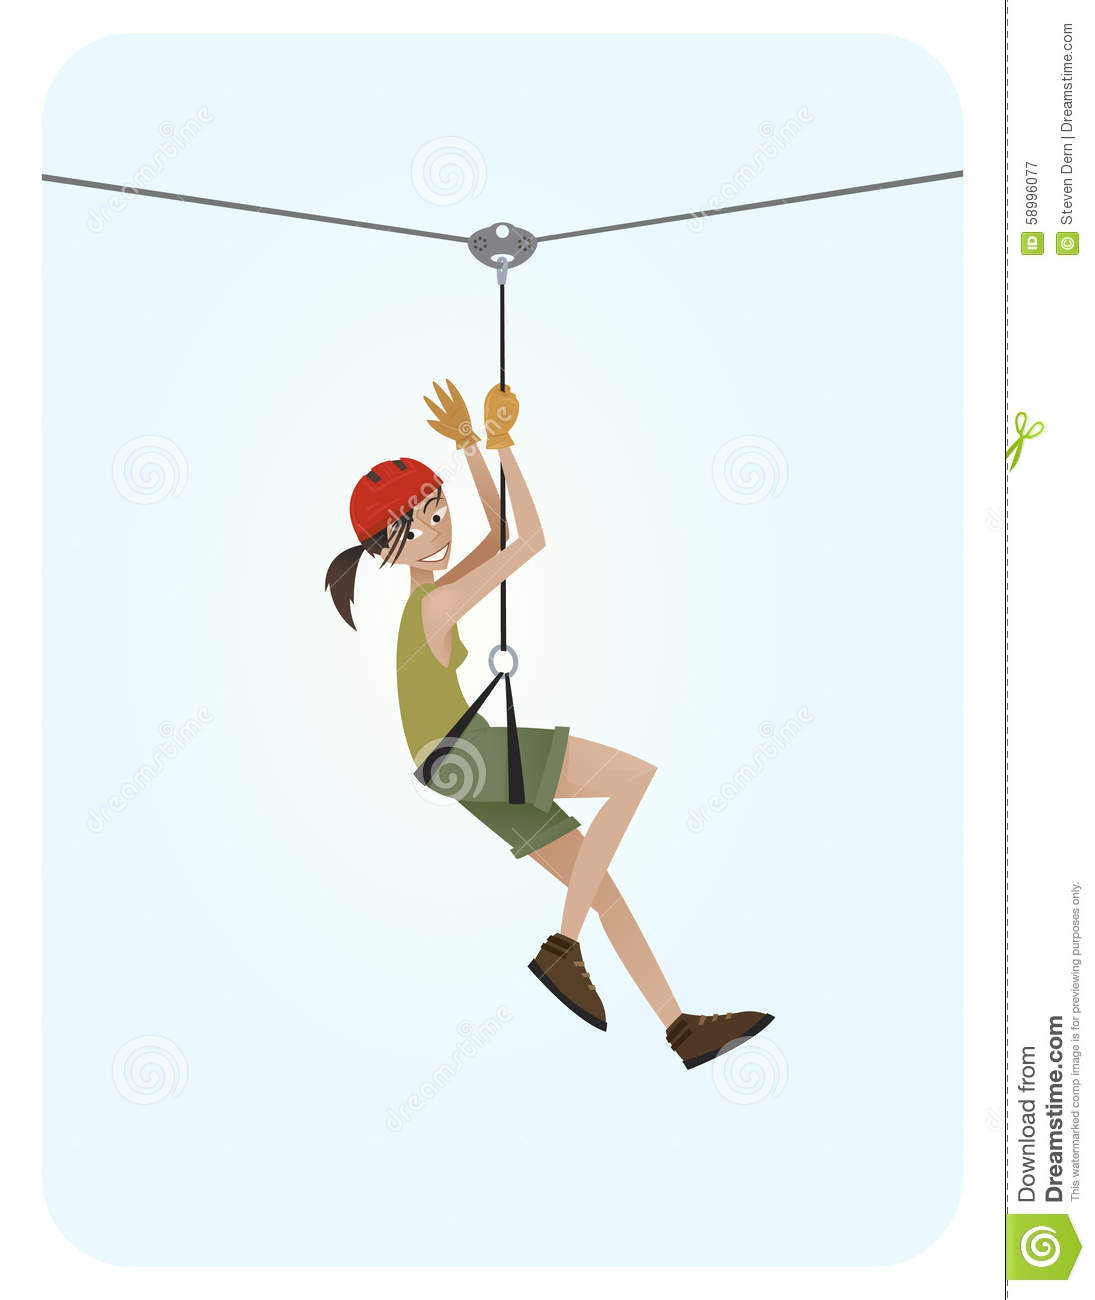 Zipline Girl Stock Vector - Image: 58996077